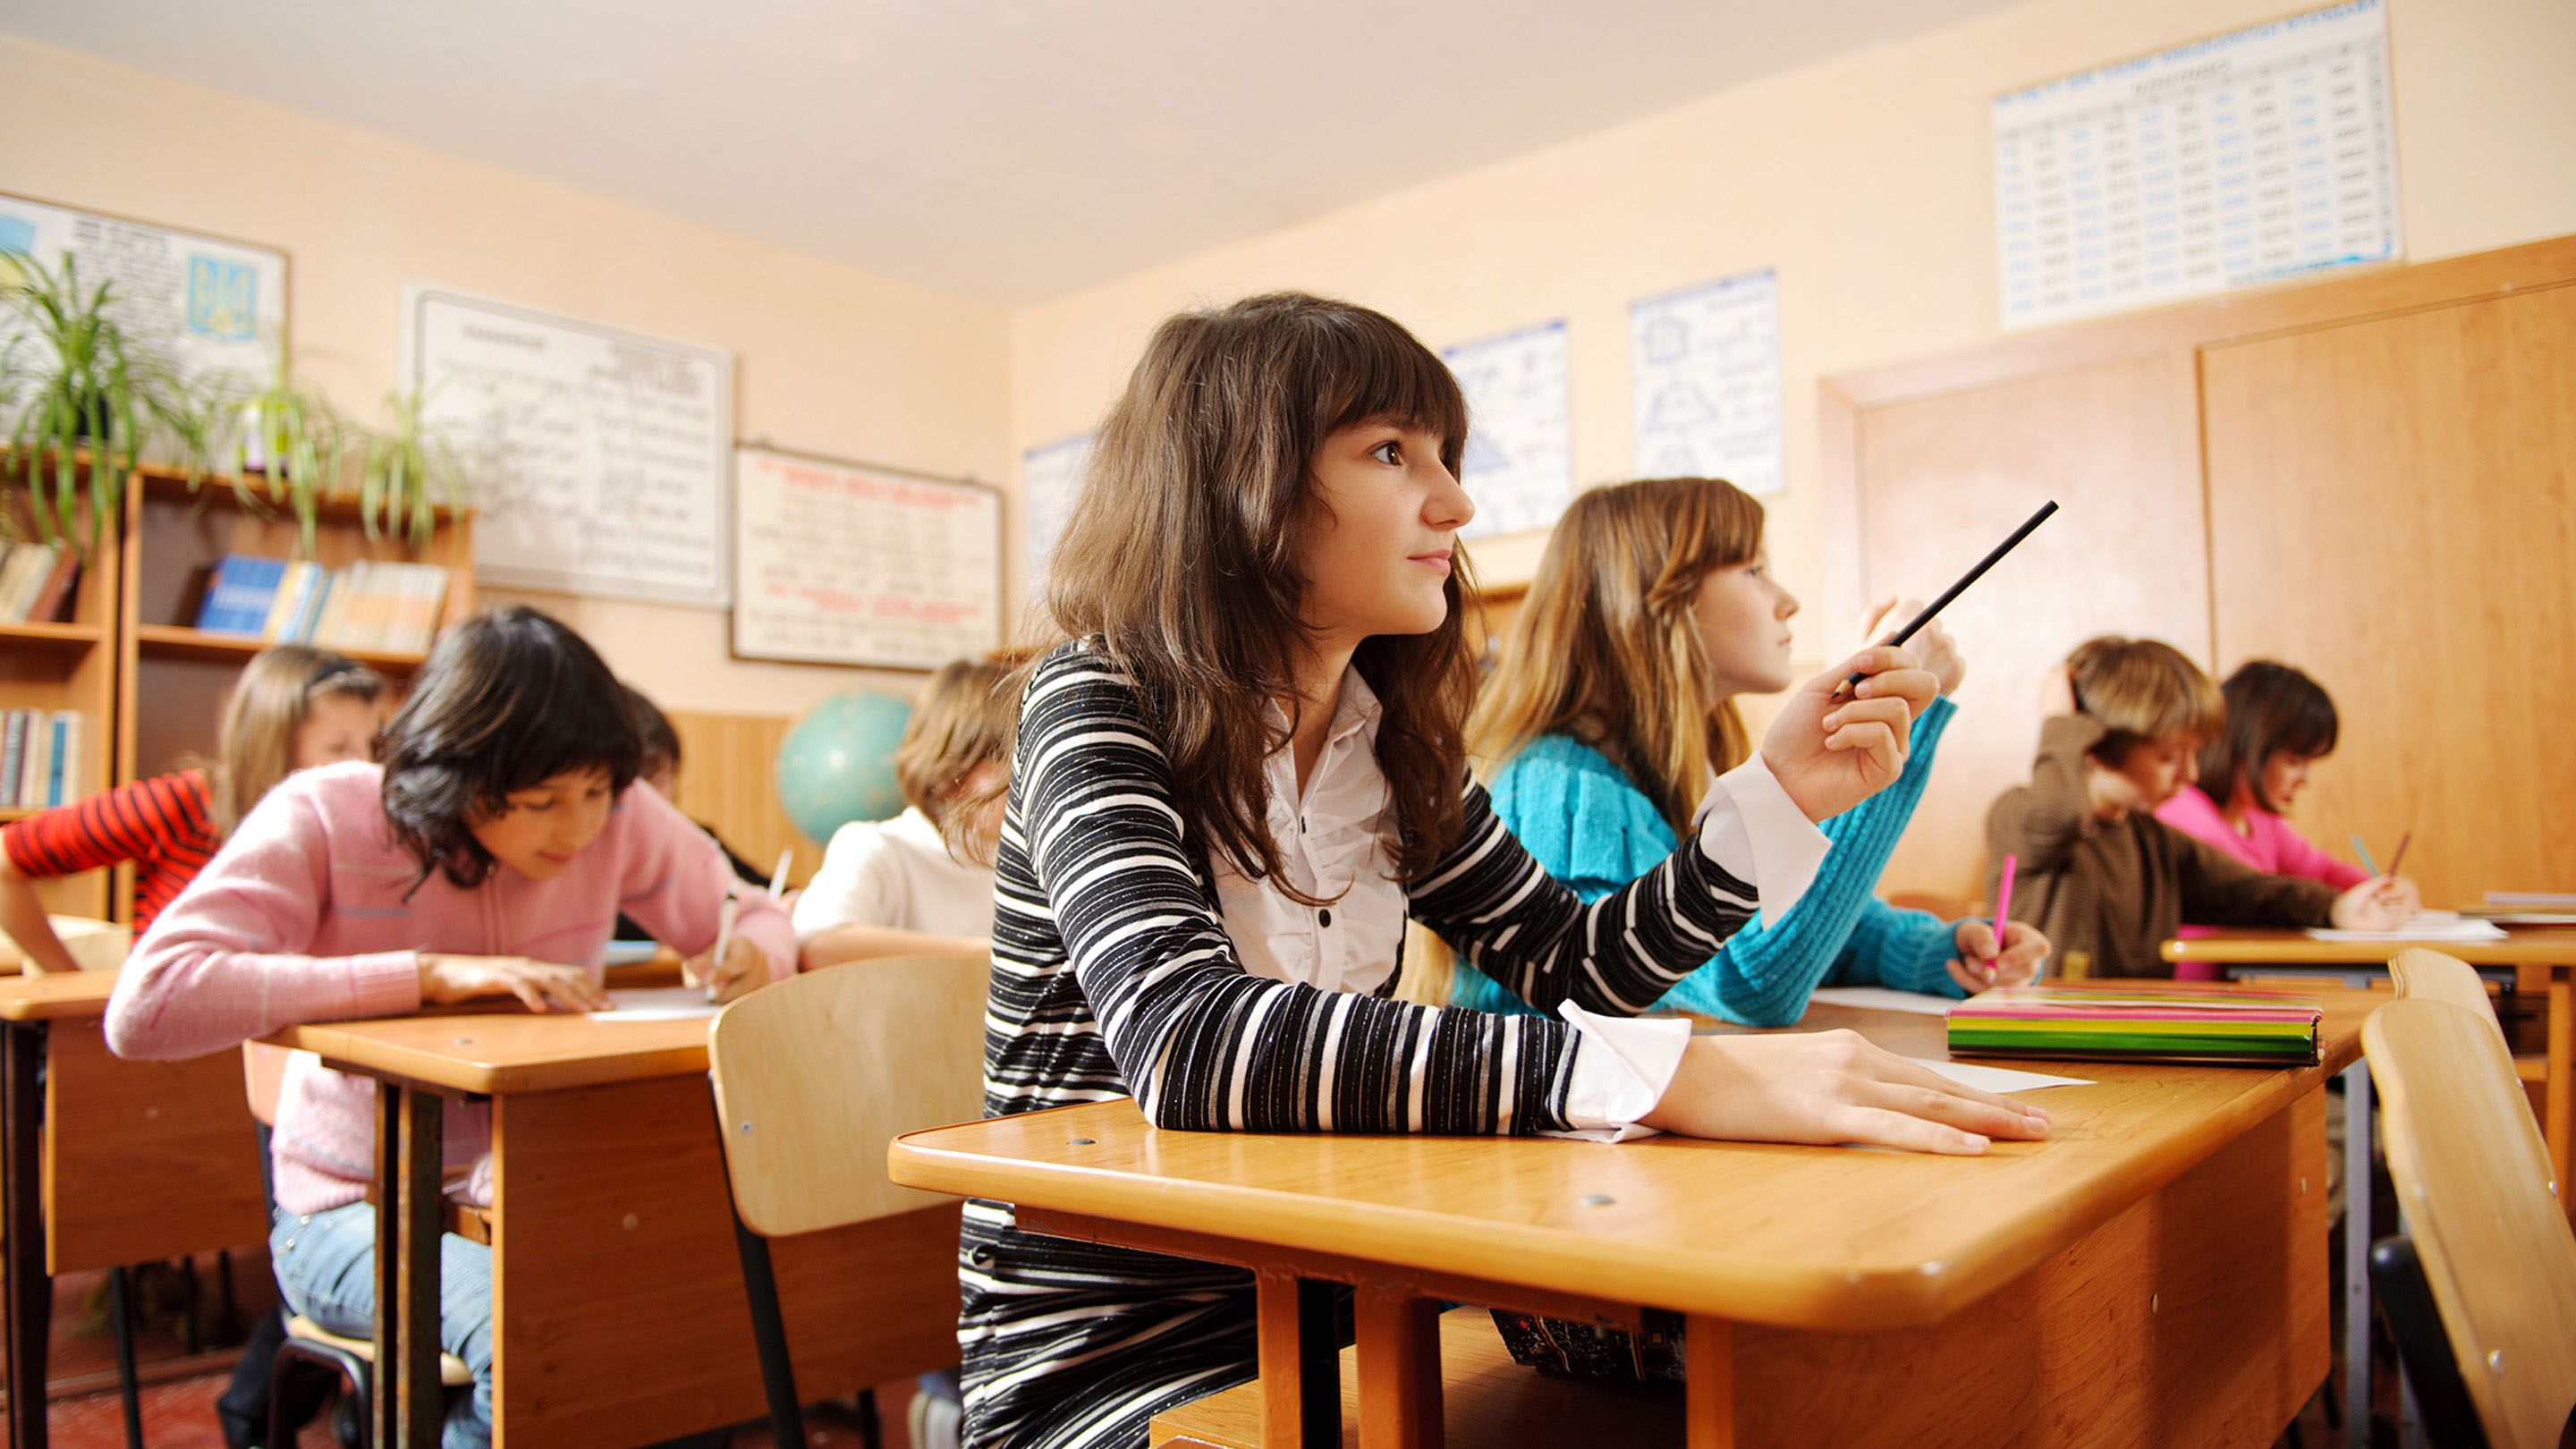 Engaged students at work in a classroom